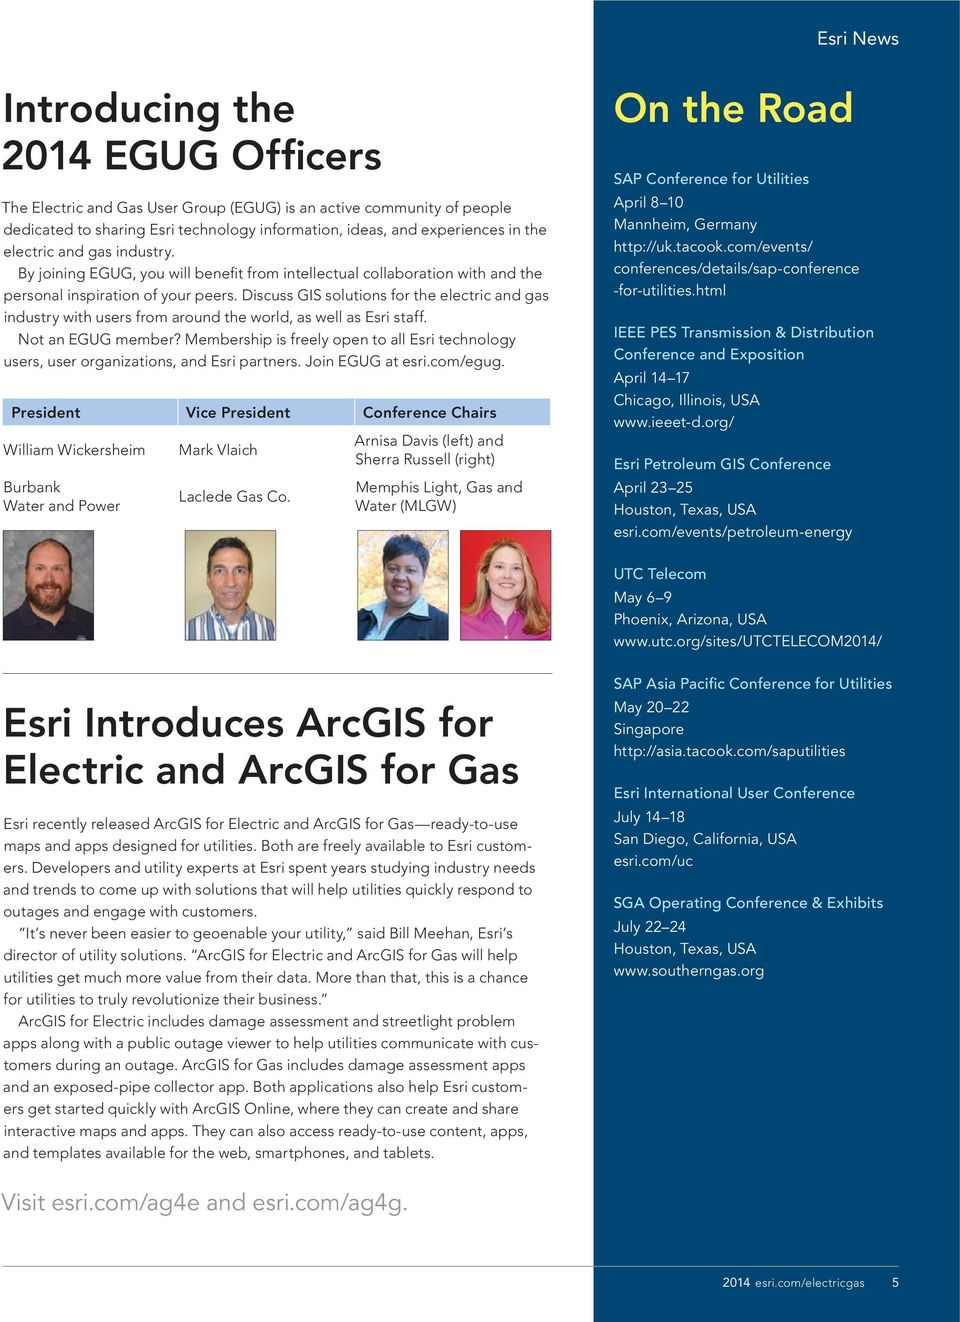 Discuss GIS solutions for the electric and gas industry with users from around the world, as well as Esri staff. Not an EGUG member?